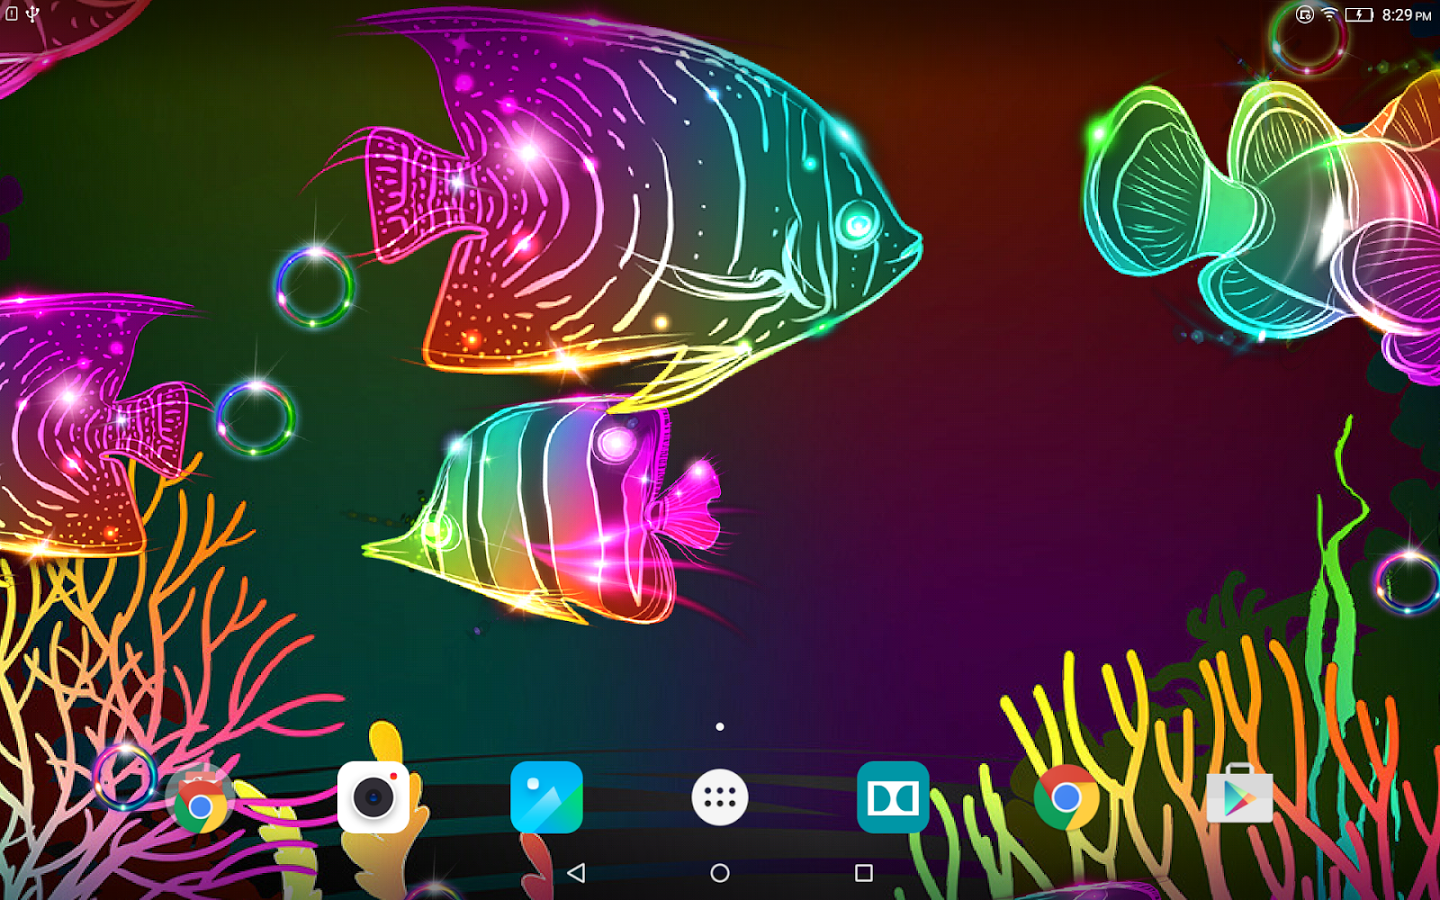 Neon Fish Live Wallpaper Android Apps on Google Play